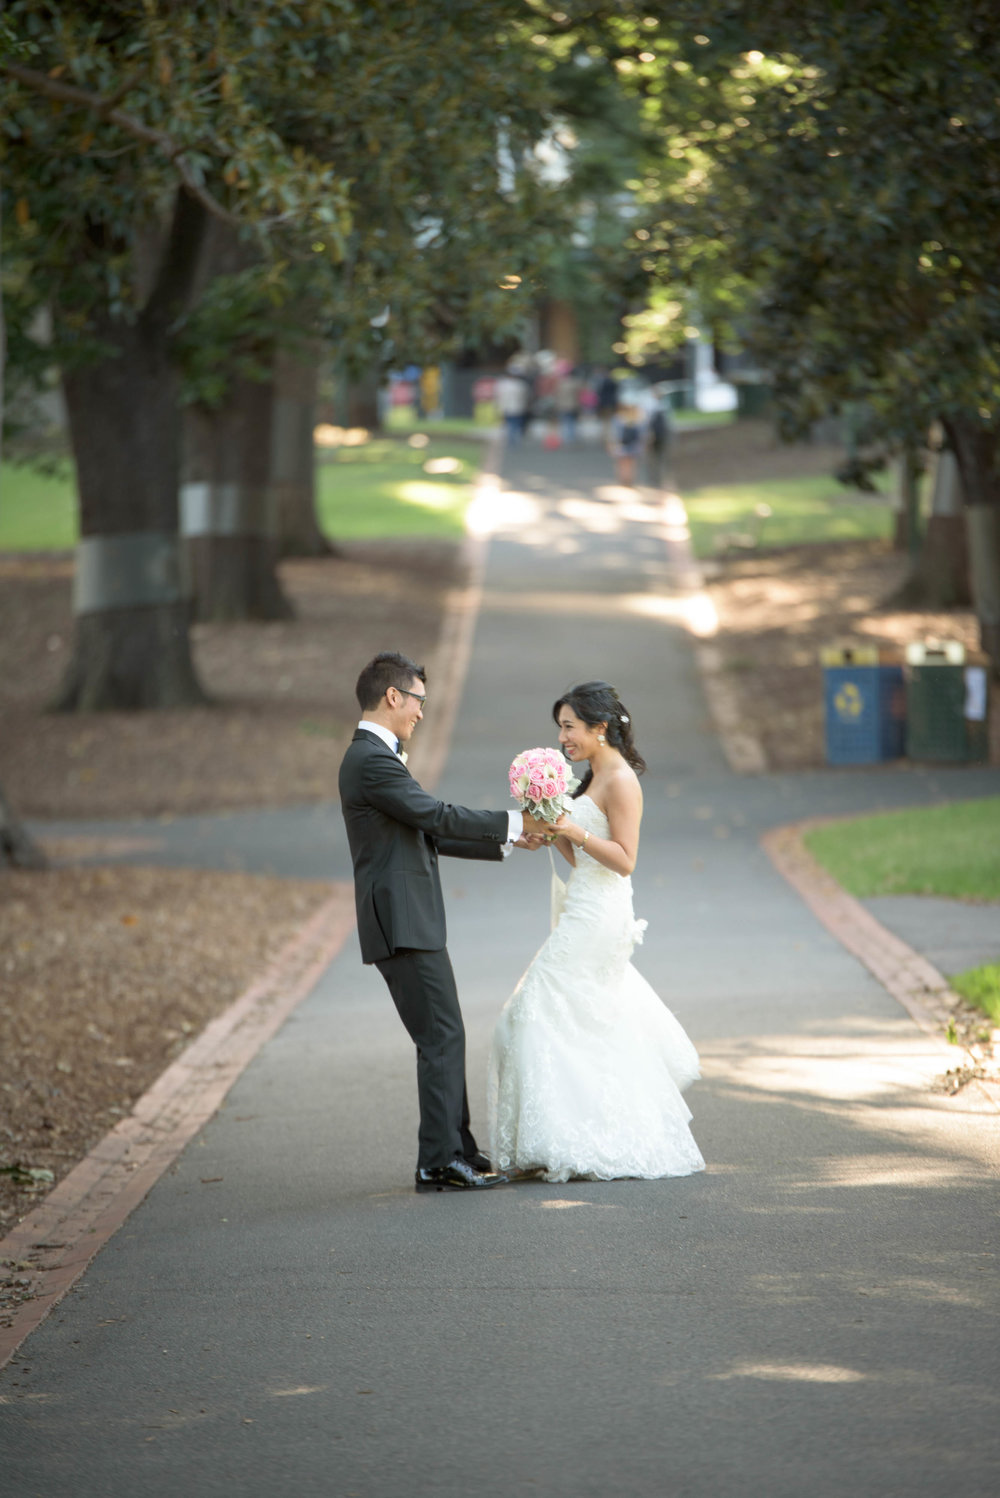 Mark Carniato Photography - Wedding Photography Melbourne - Sarah and Peter-30.jpg